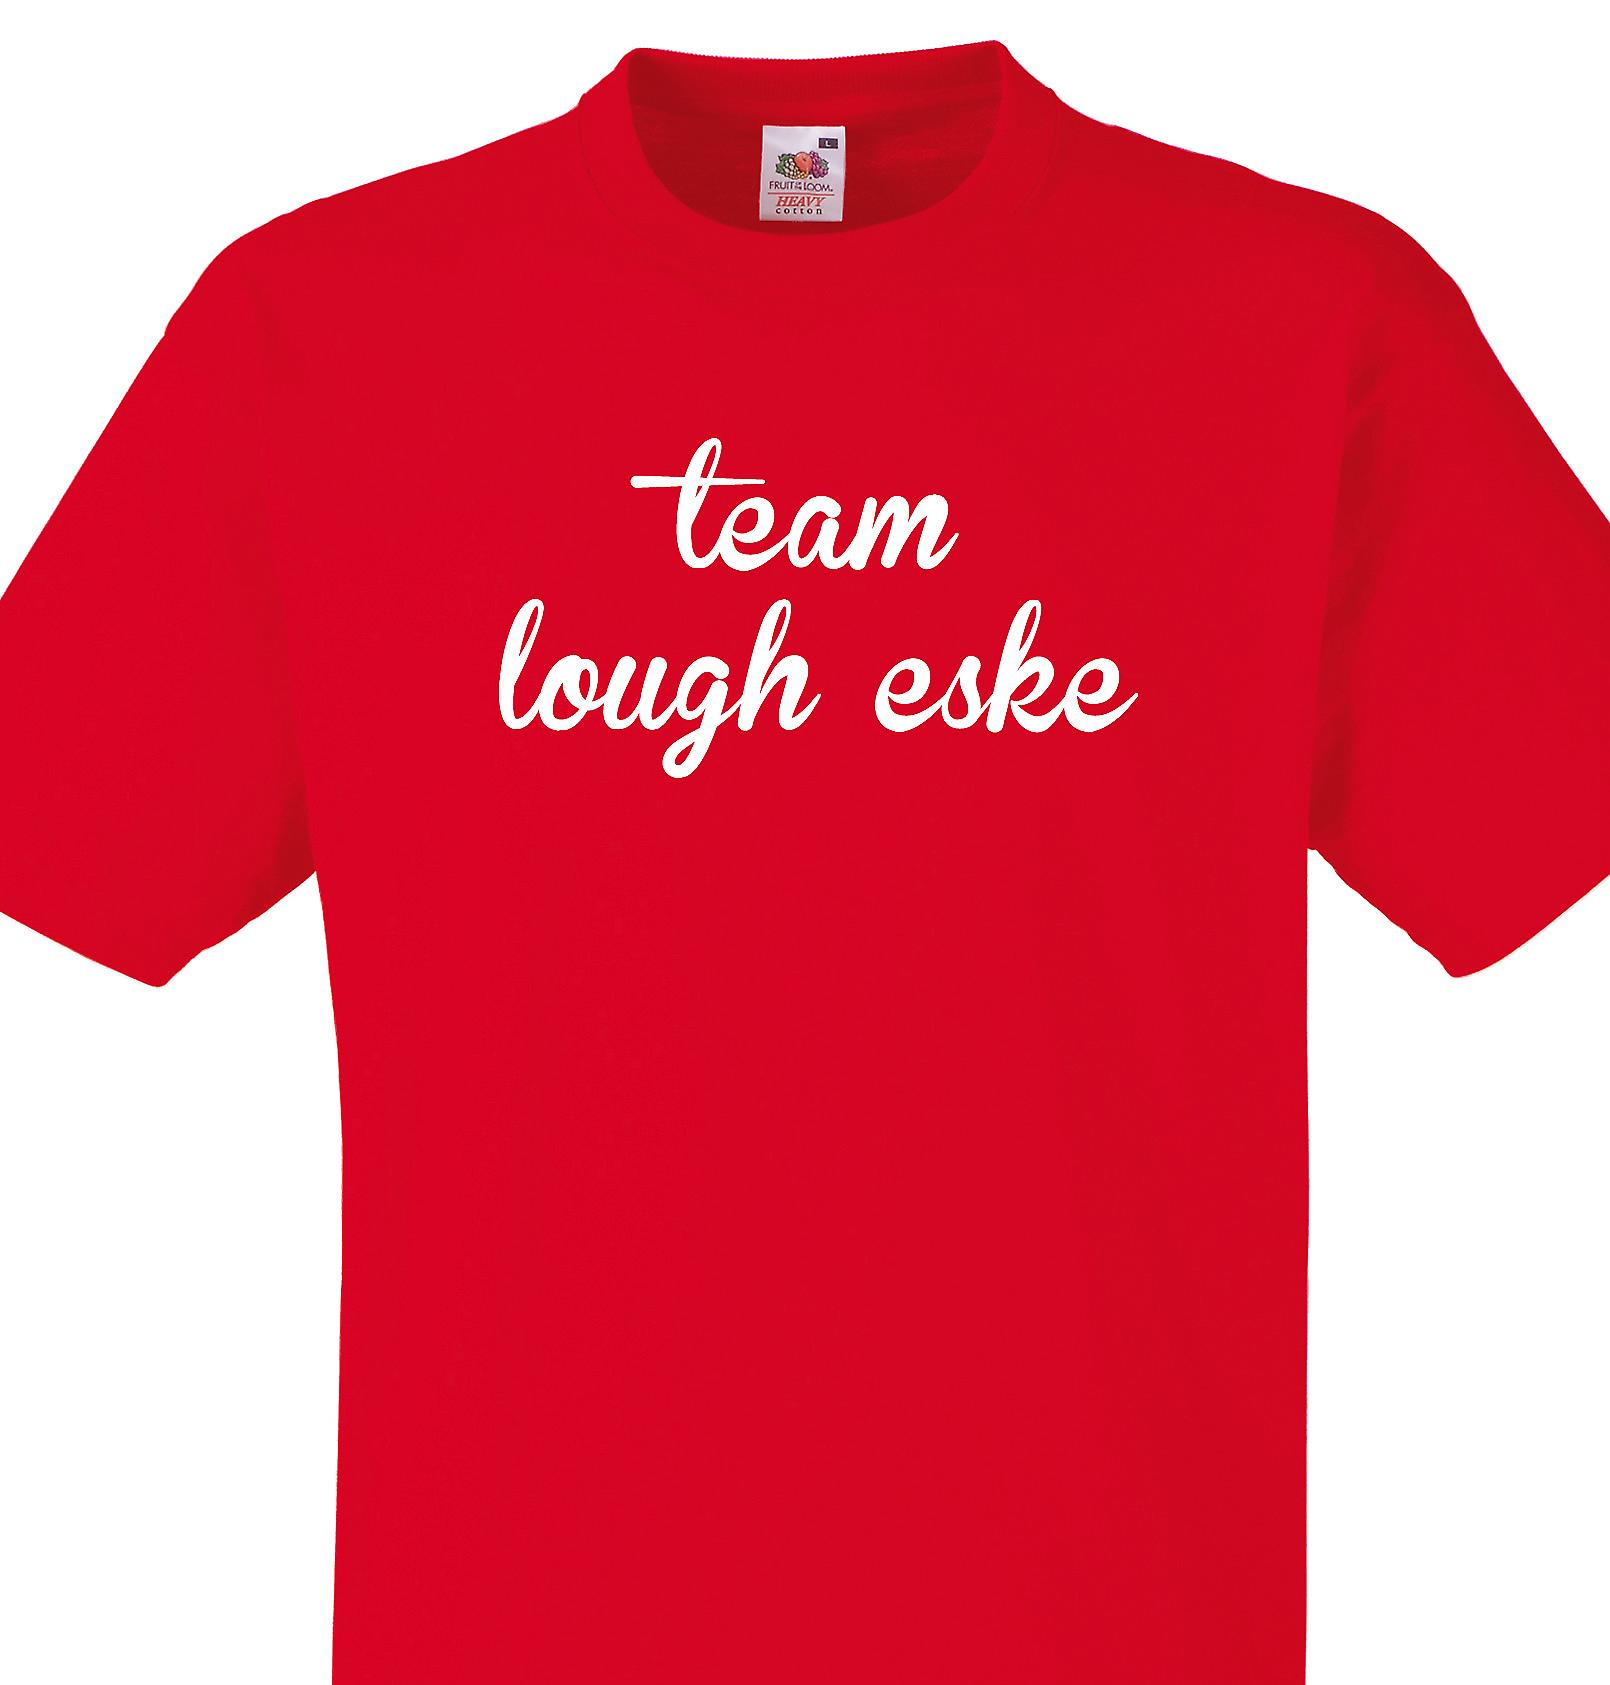 Team Lough eske Red T shirt